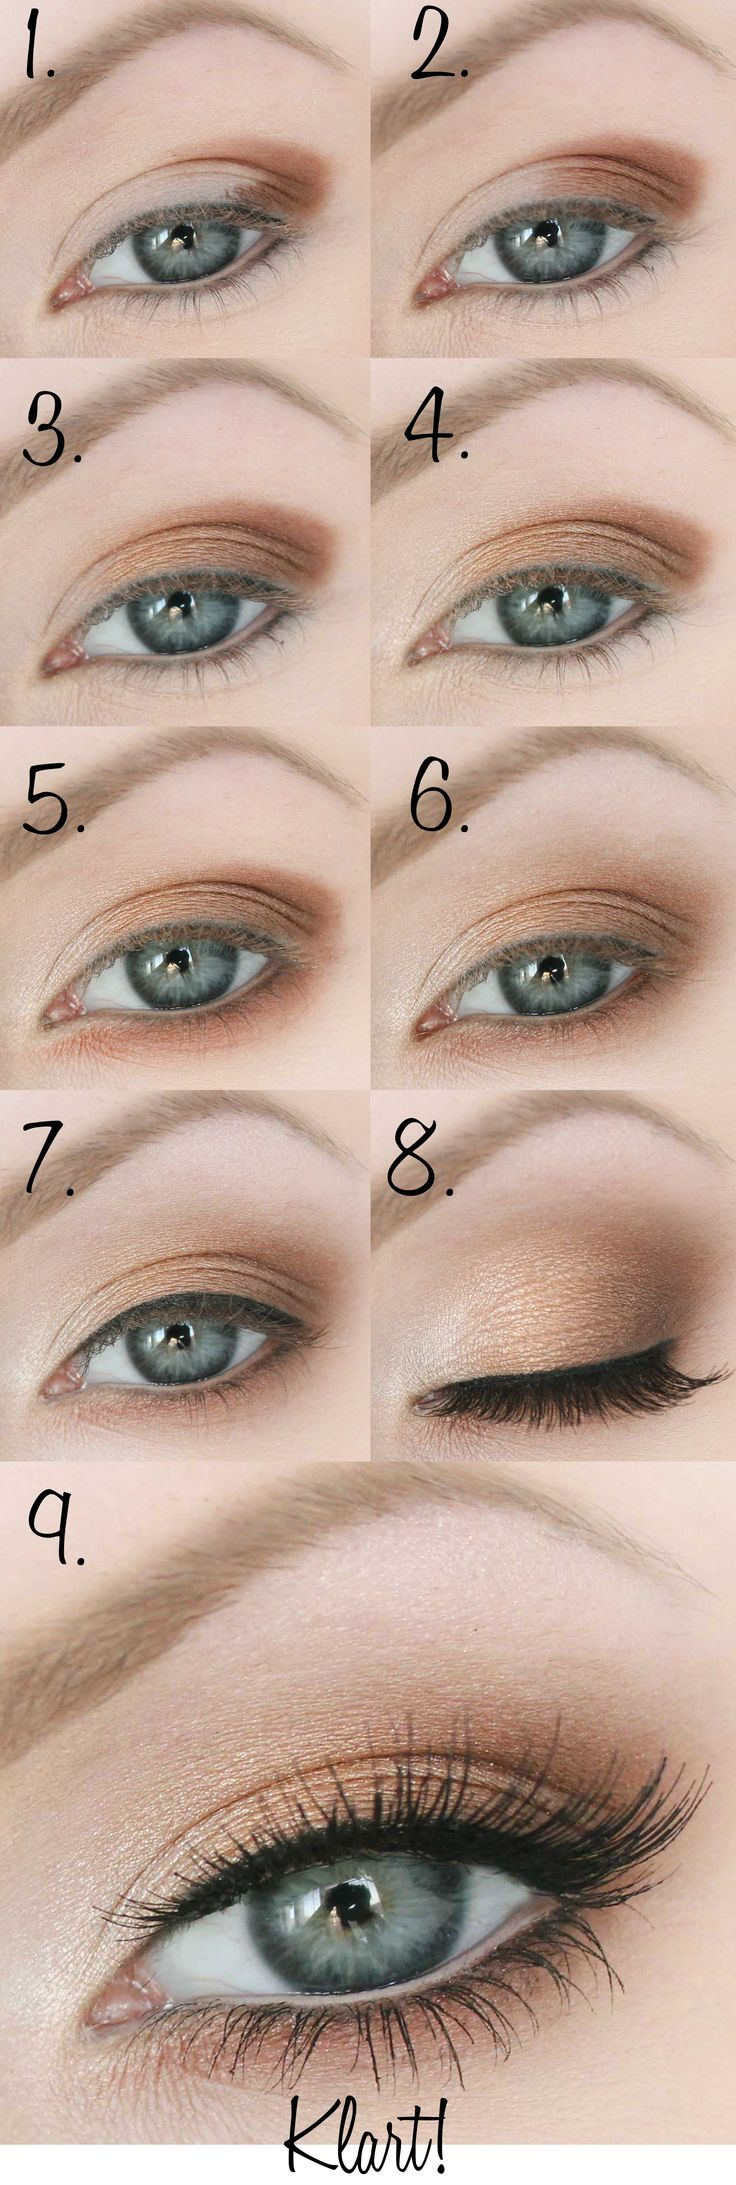 tutorial for a pretty daylight make up in natural colours <3 http://oopsinspired.com